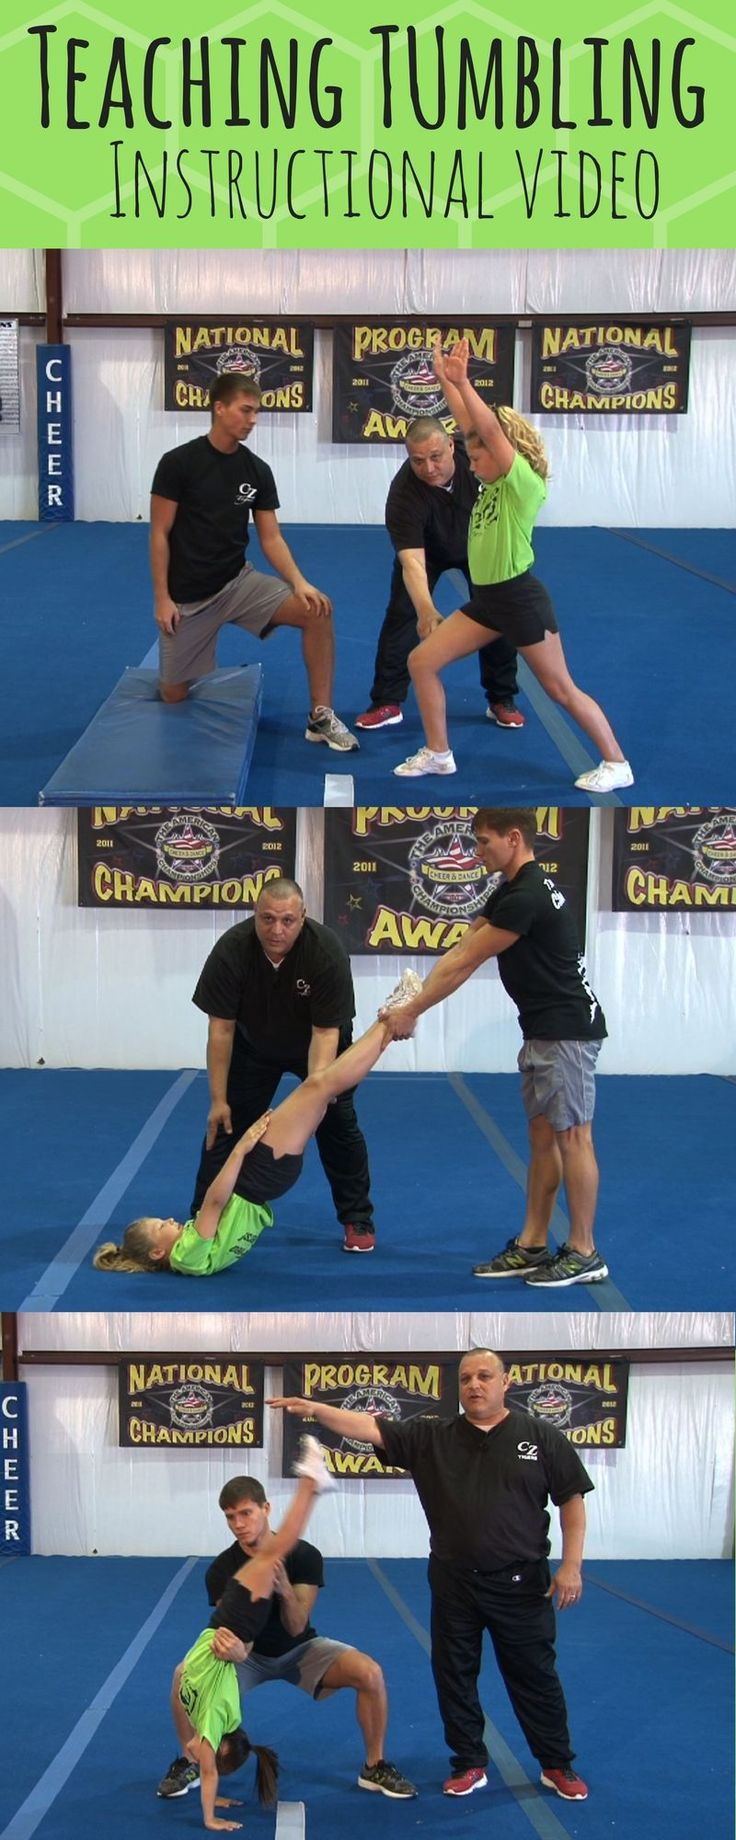 Learn Cheerleading | So You Want to Learn to Be a Cheerleader